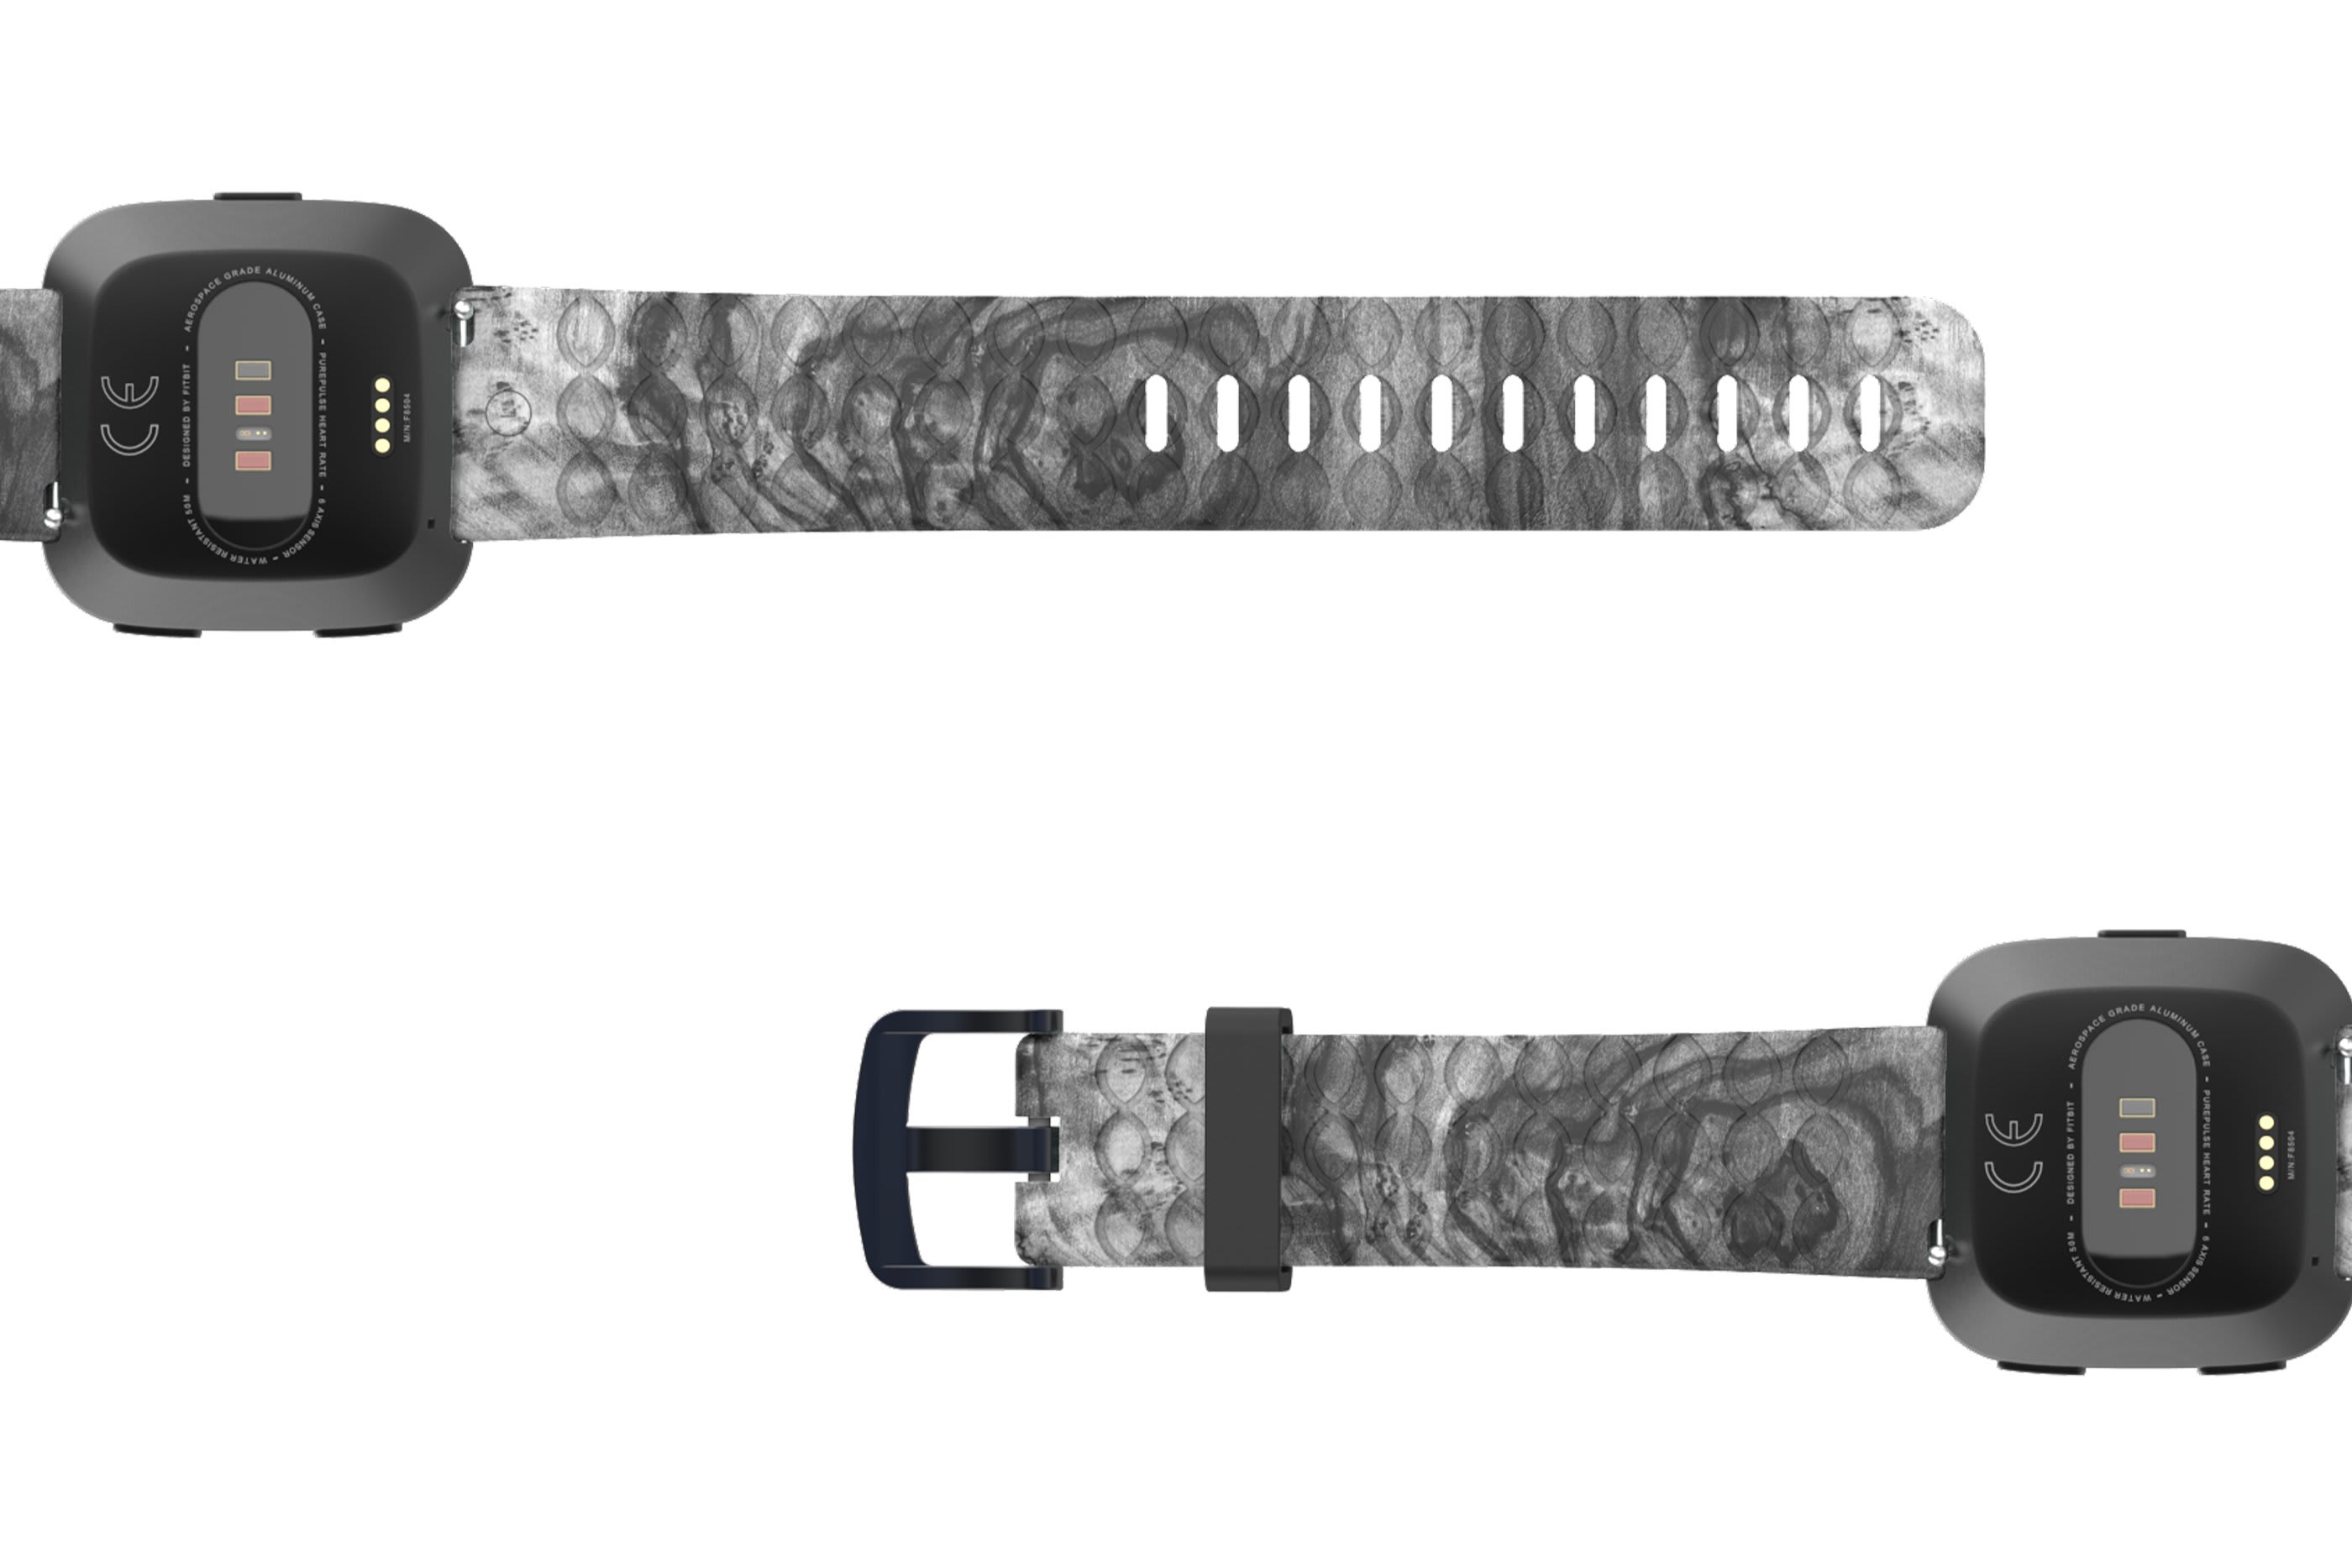 Nomad Relic Fitbit Versa   watch band with gray hardware viewed bottom up